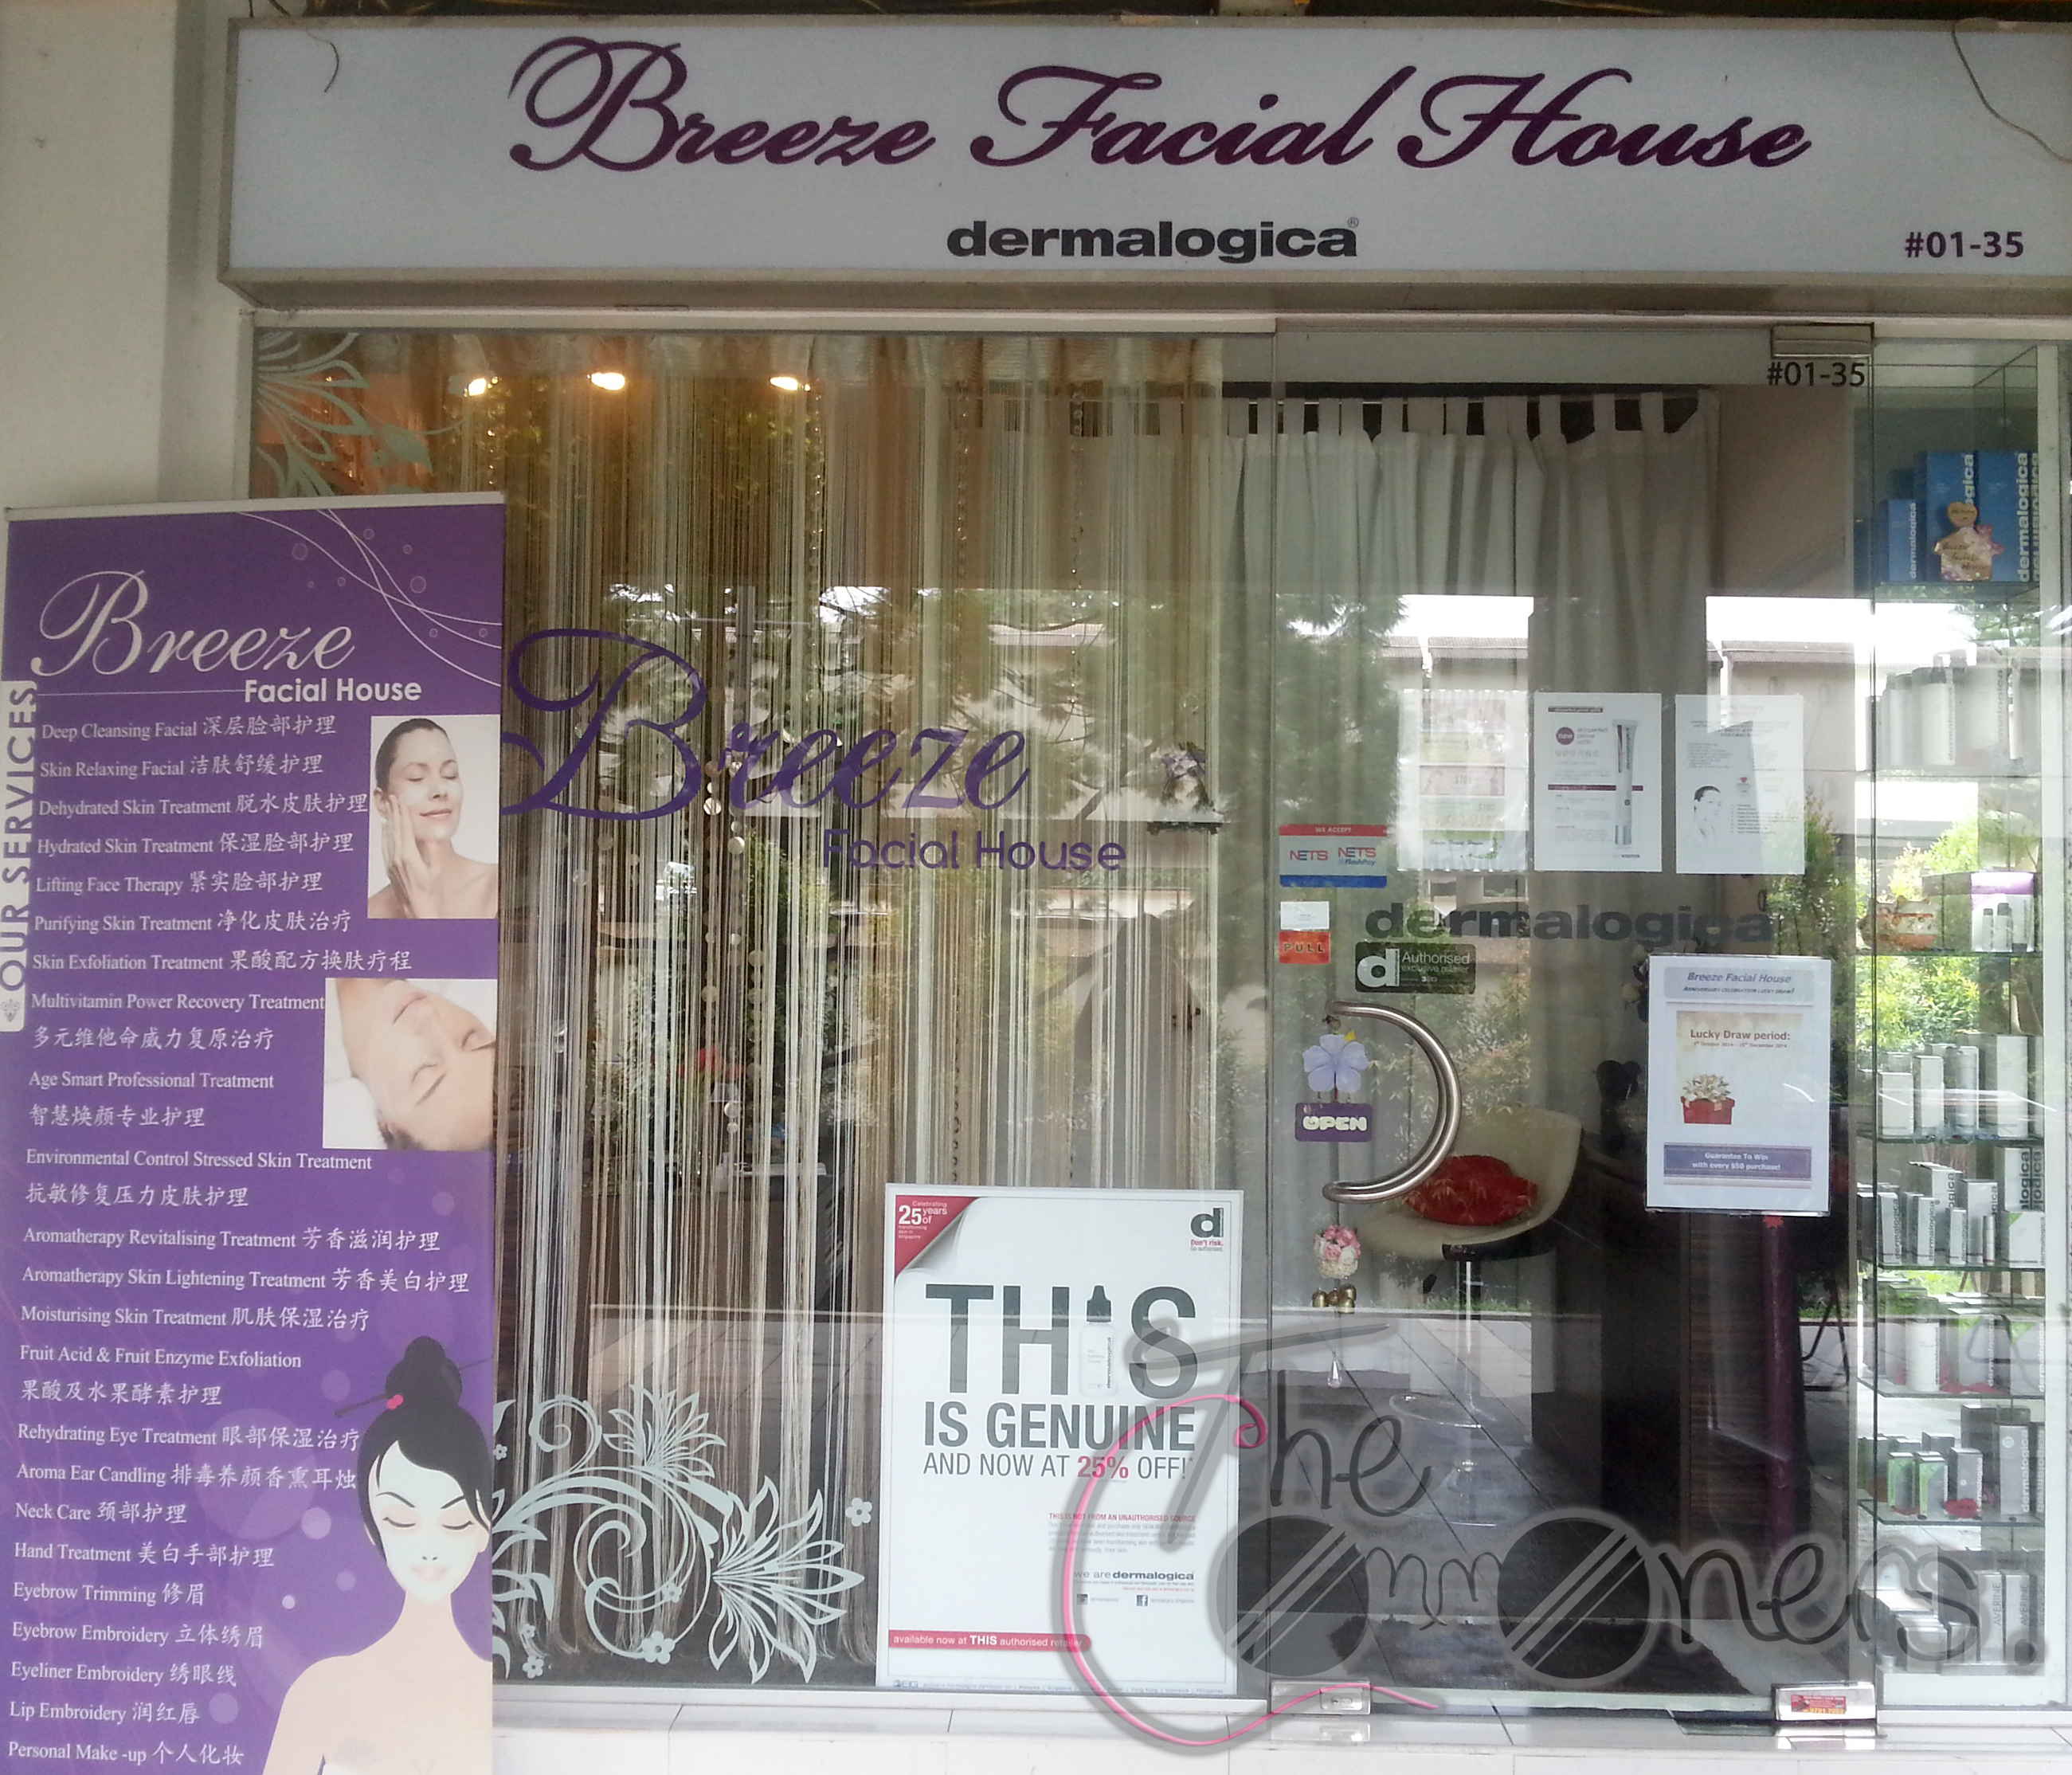 Breeze Facial House